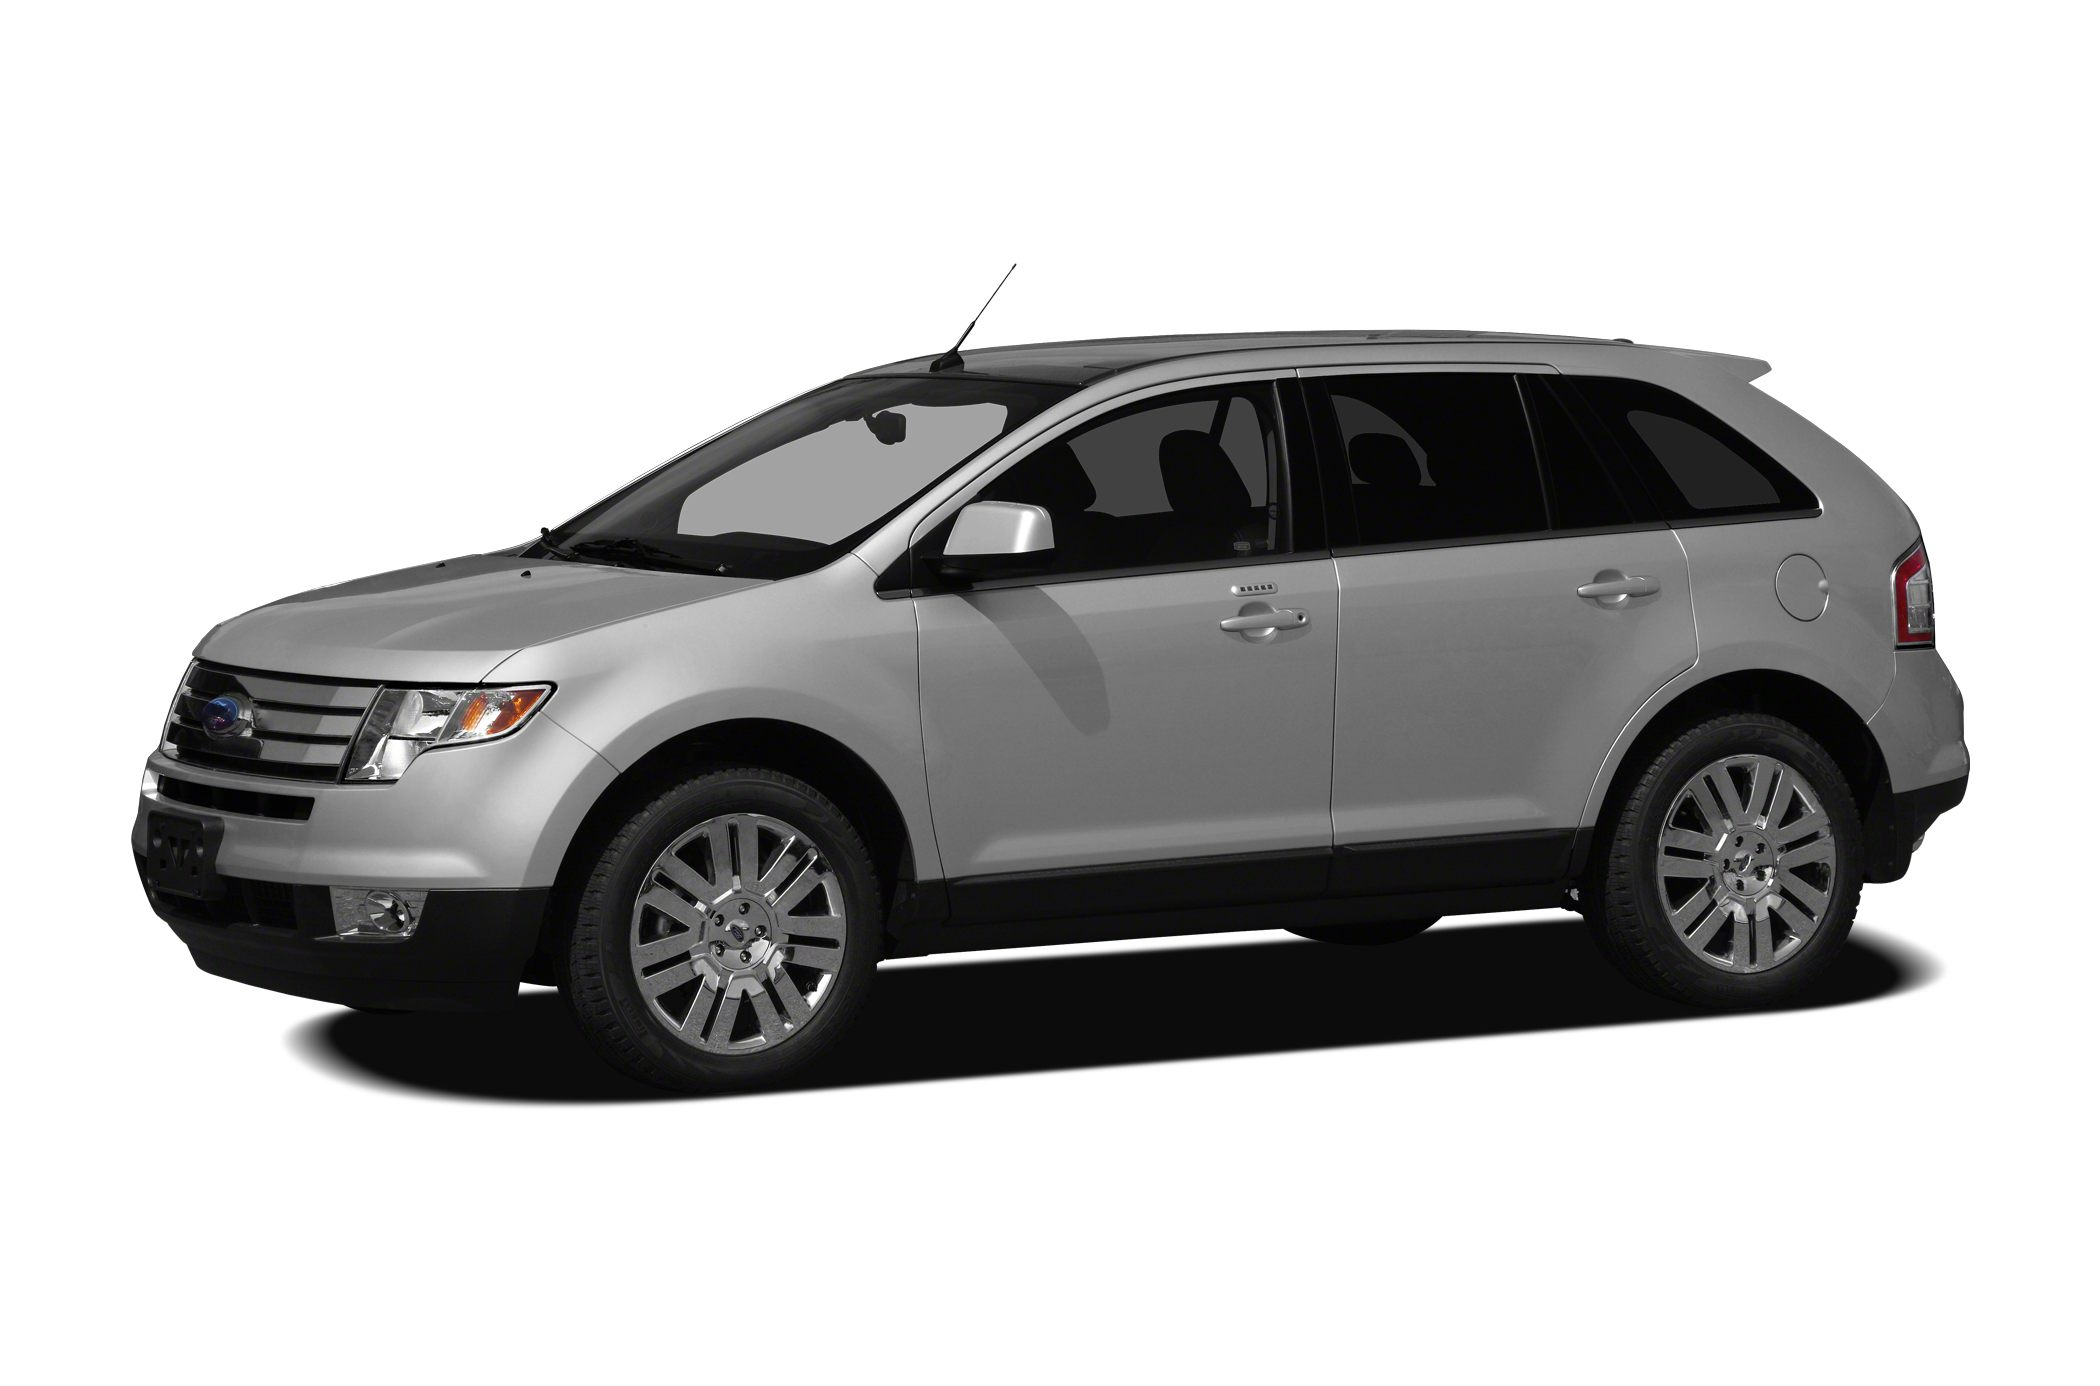 2010 Ford Edge SEL SUV for sale in Santa Maria for $20,000 with 72,404 miles